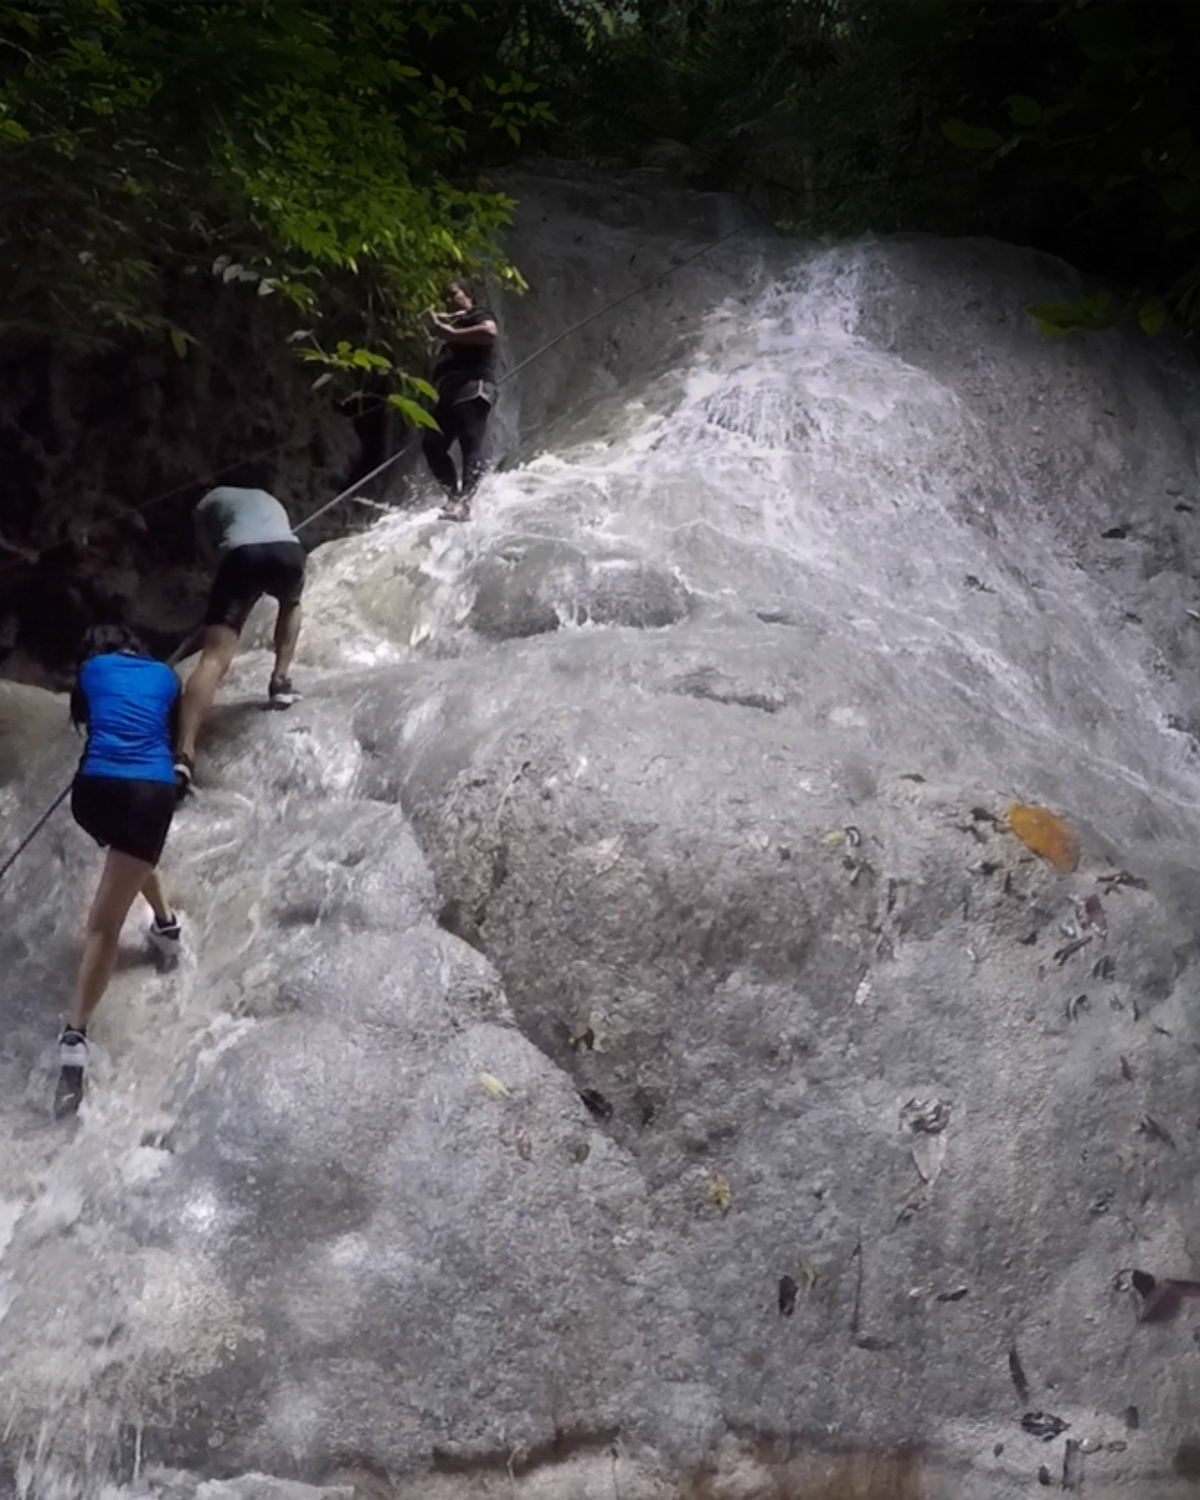 Aguinid Falls Location - Hiking to the second level